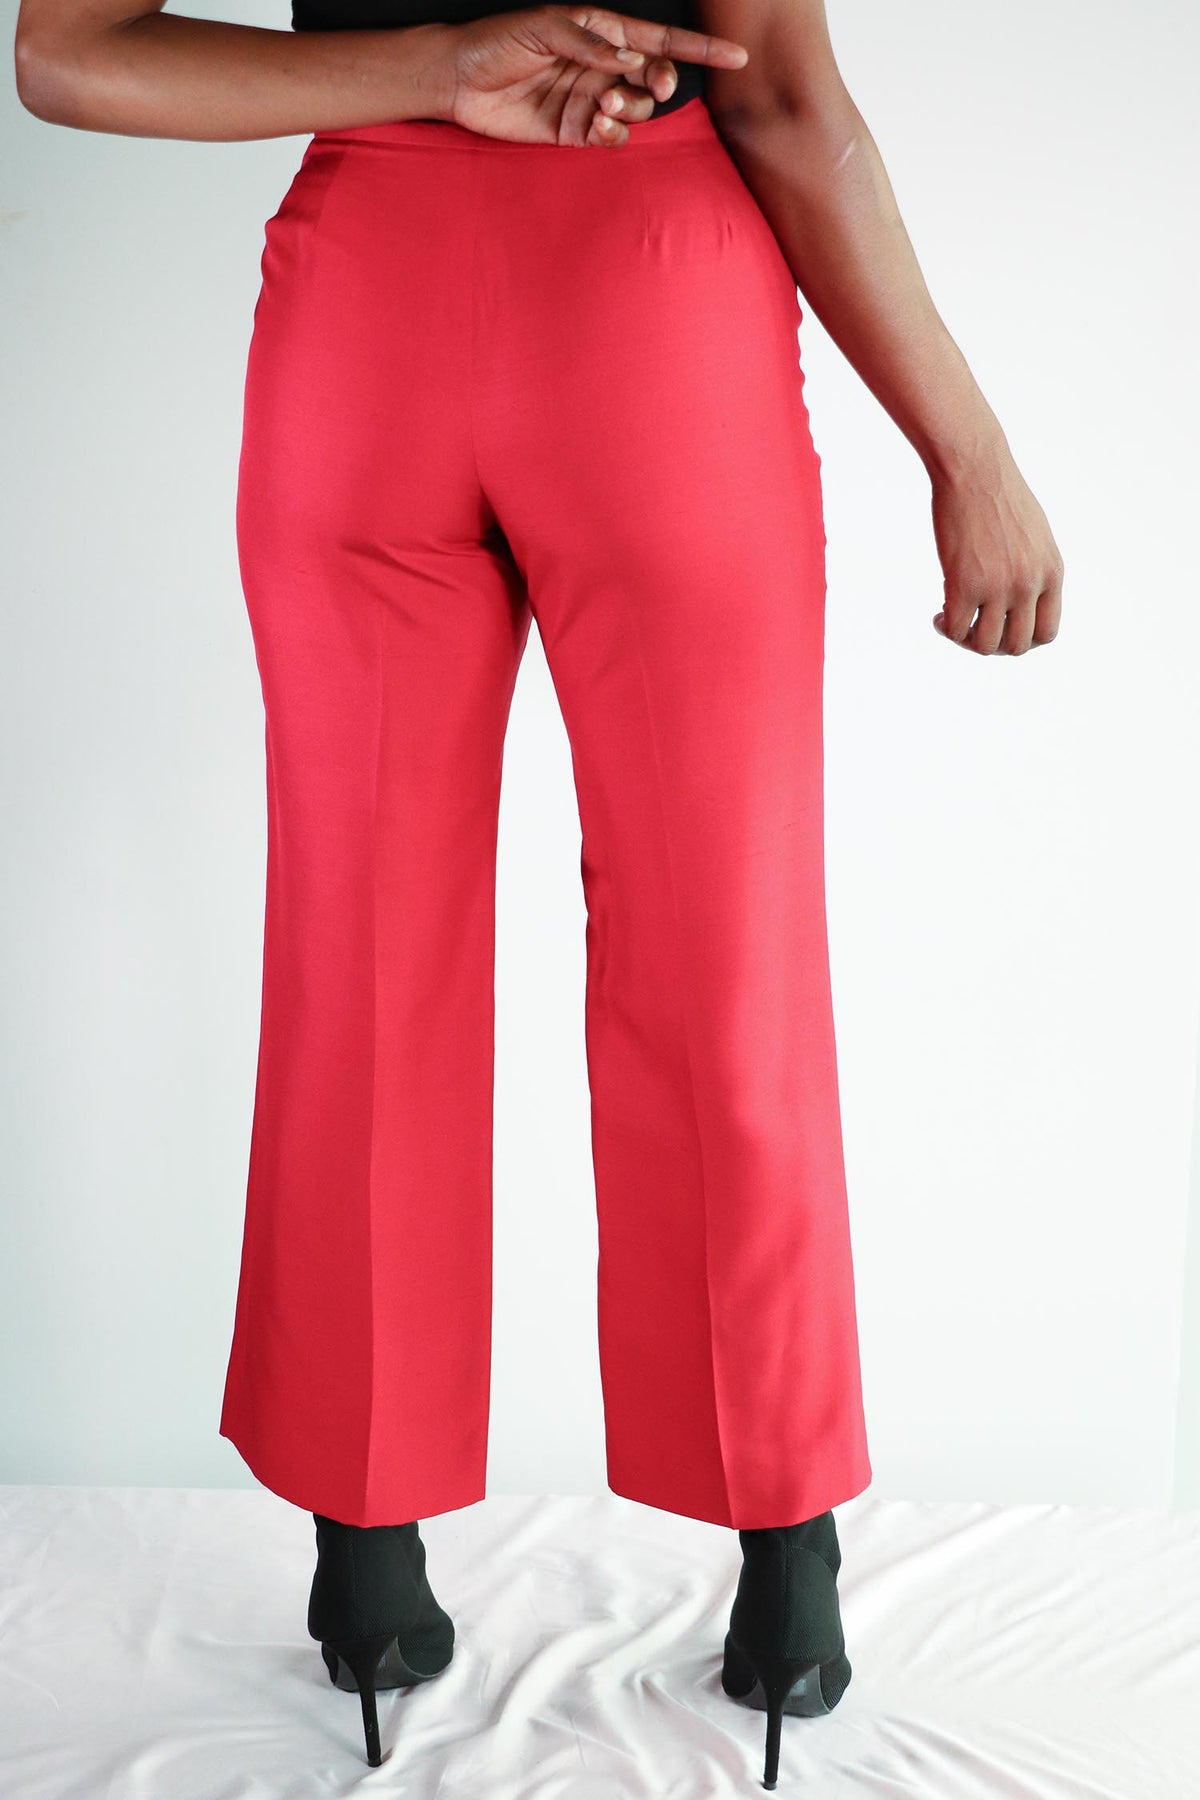 Vintage Anne Taylor - Red Silk Pants - 6 Petite